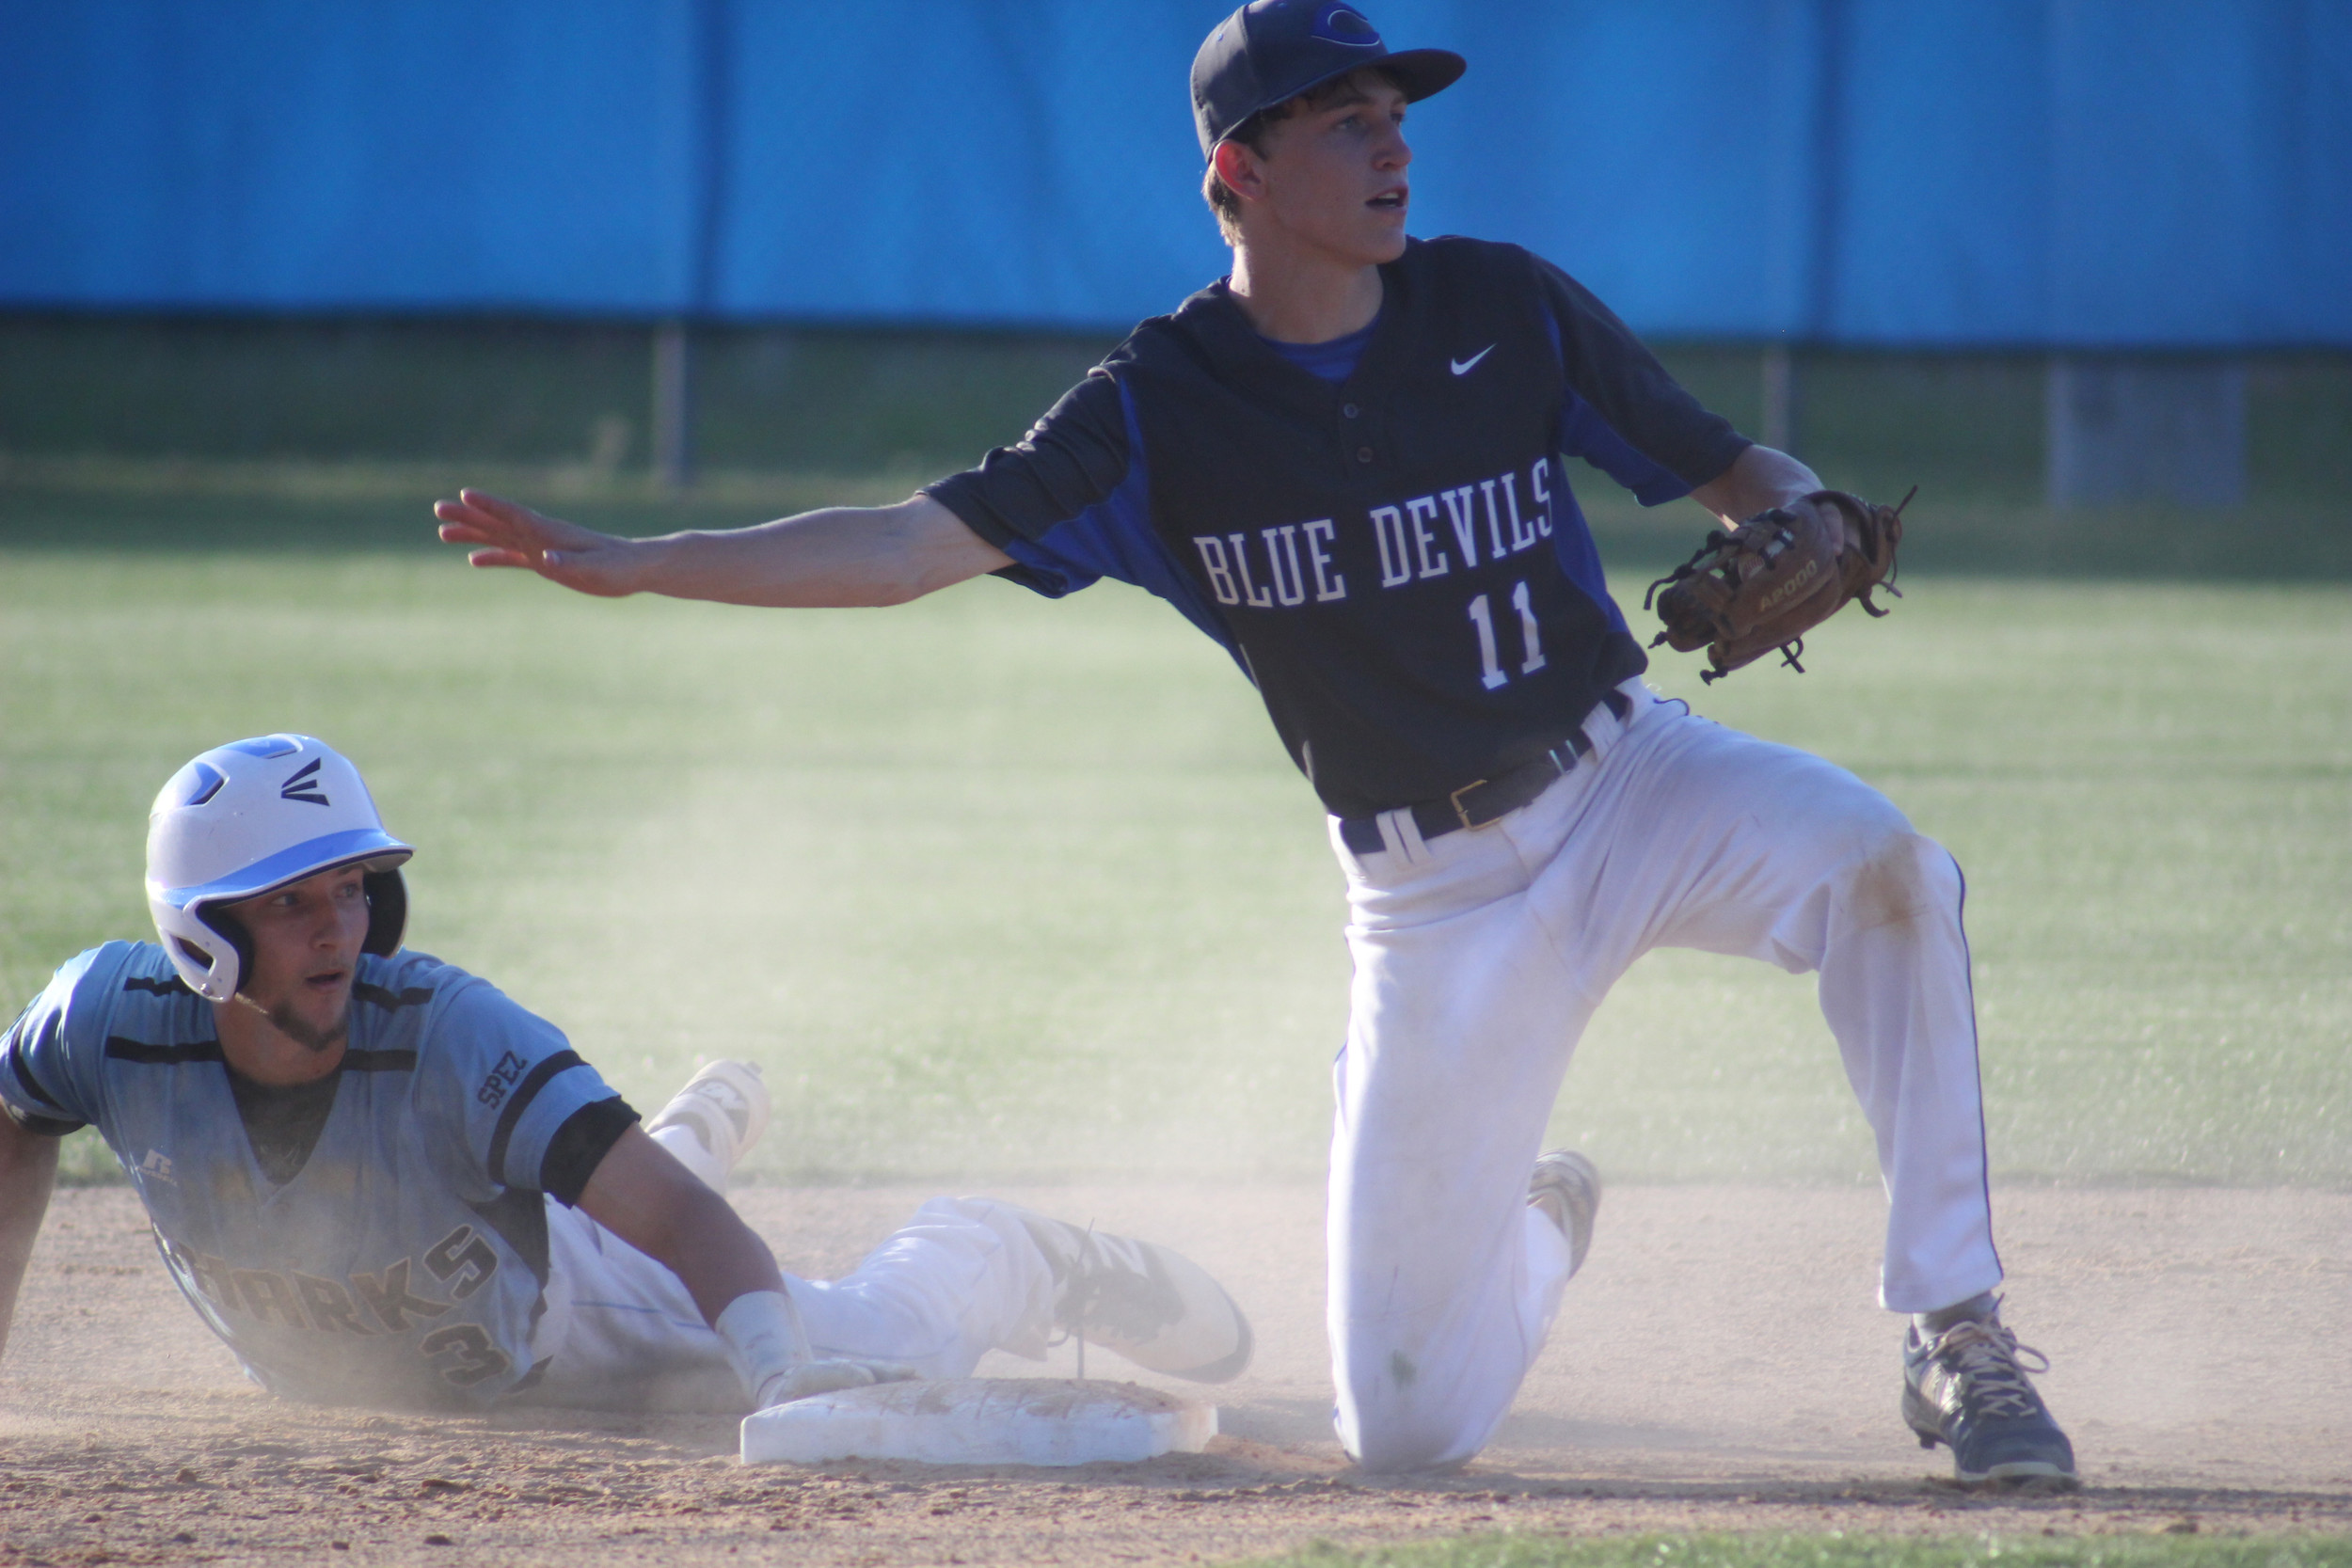 Clay High second baseman Austin Burke finishes off successful pickoff of Ponte Vedra baserunner in Blue Devils' second loss in three days to Sharks. Clay needs the right formula to upend Sharks in district tournament next week.